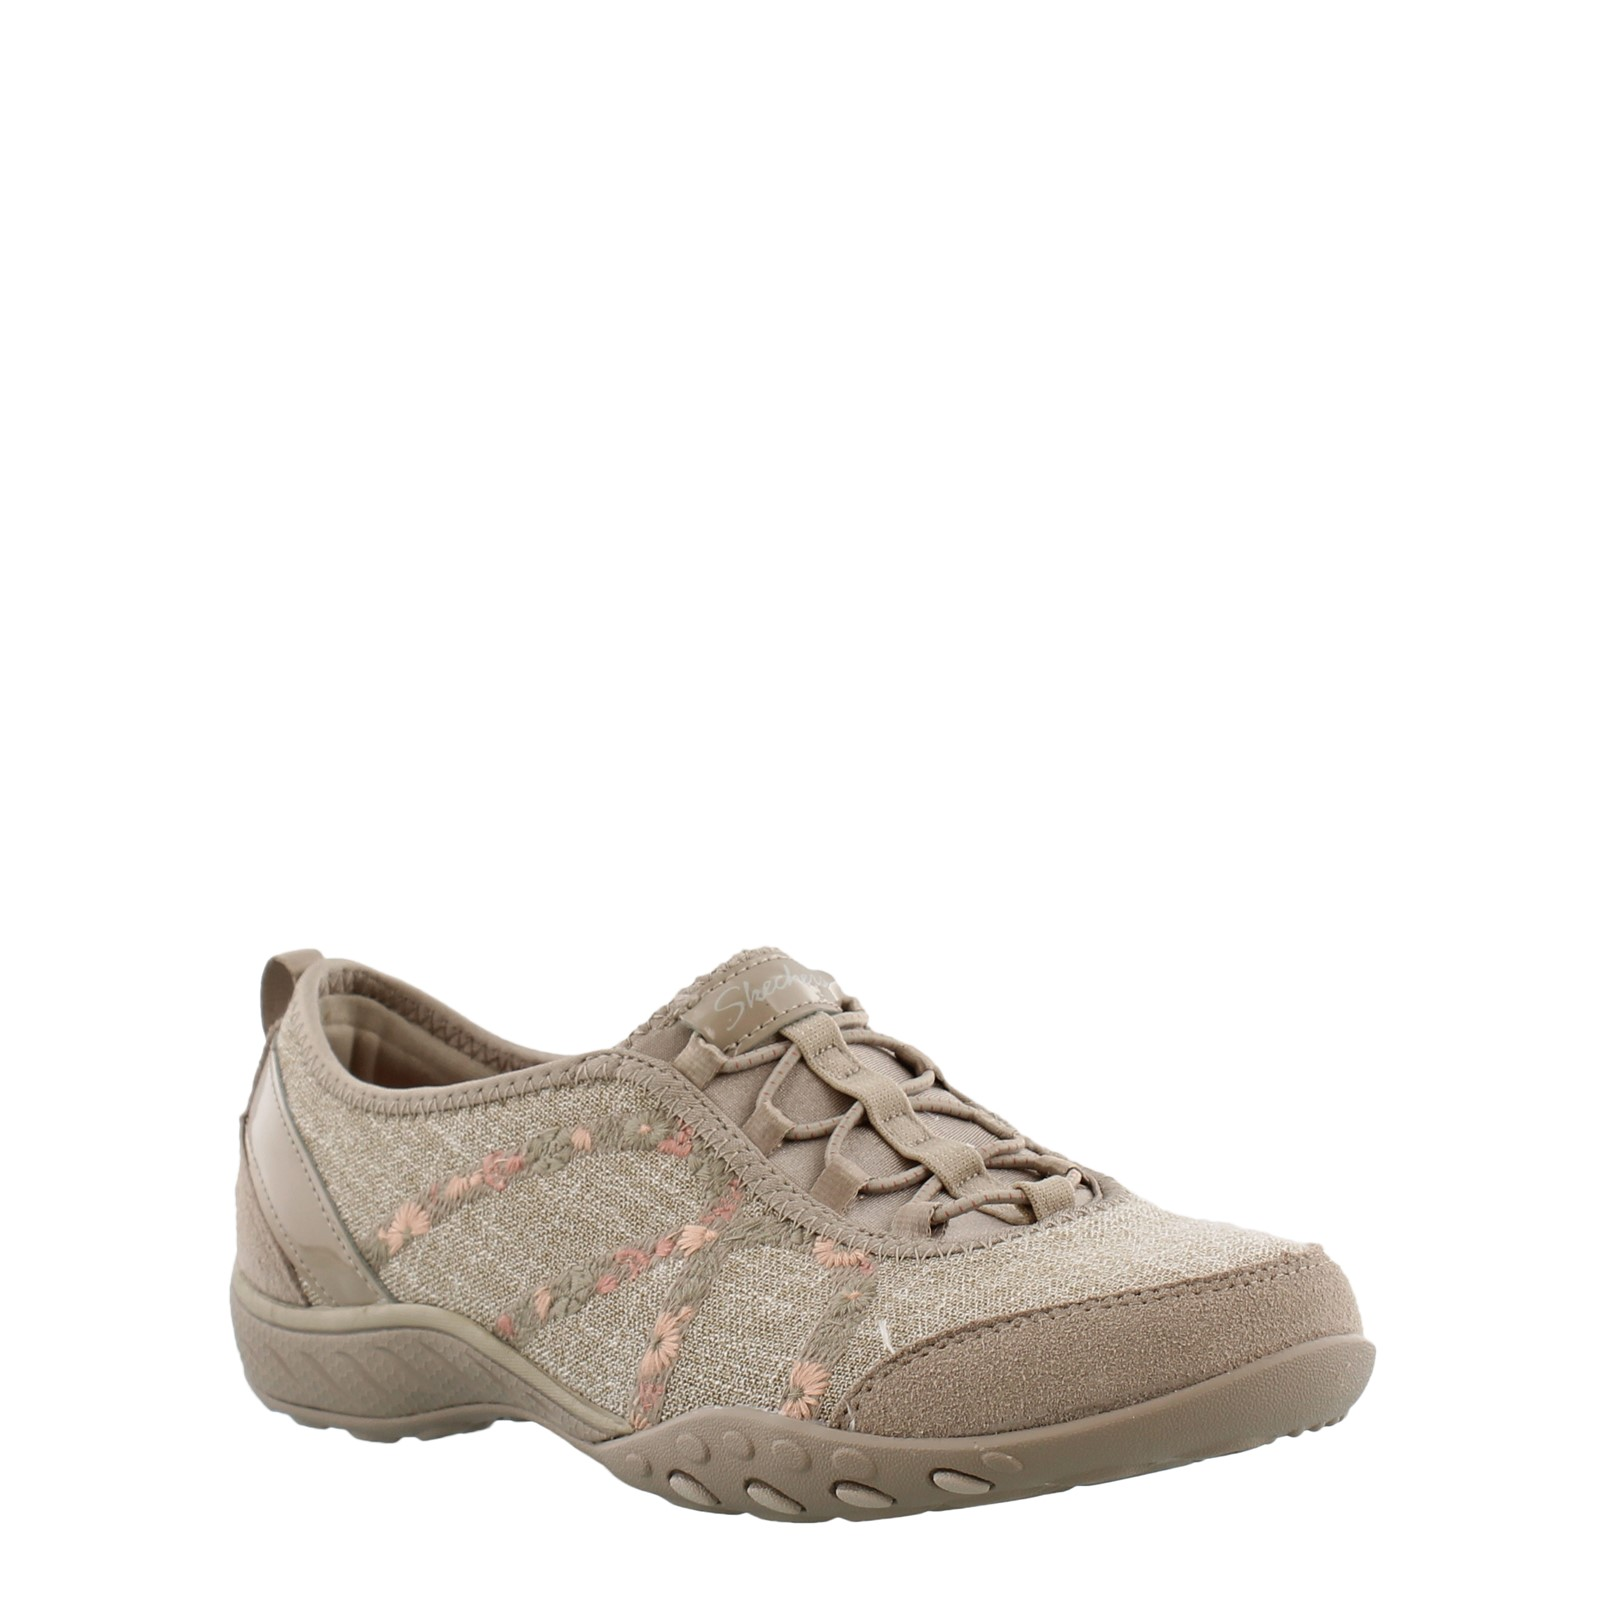 Women S Skechers Relaxed Fit Breathe Easy Garden Joy